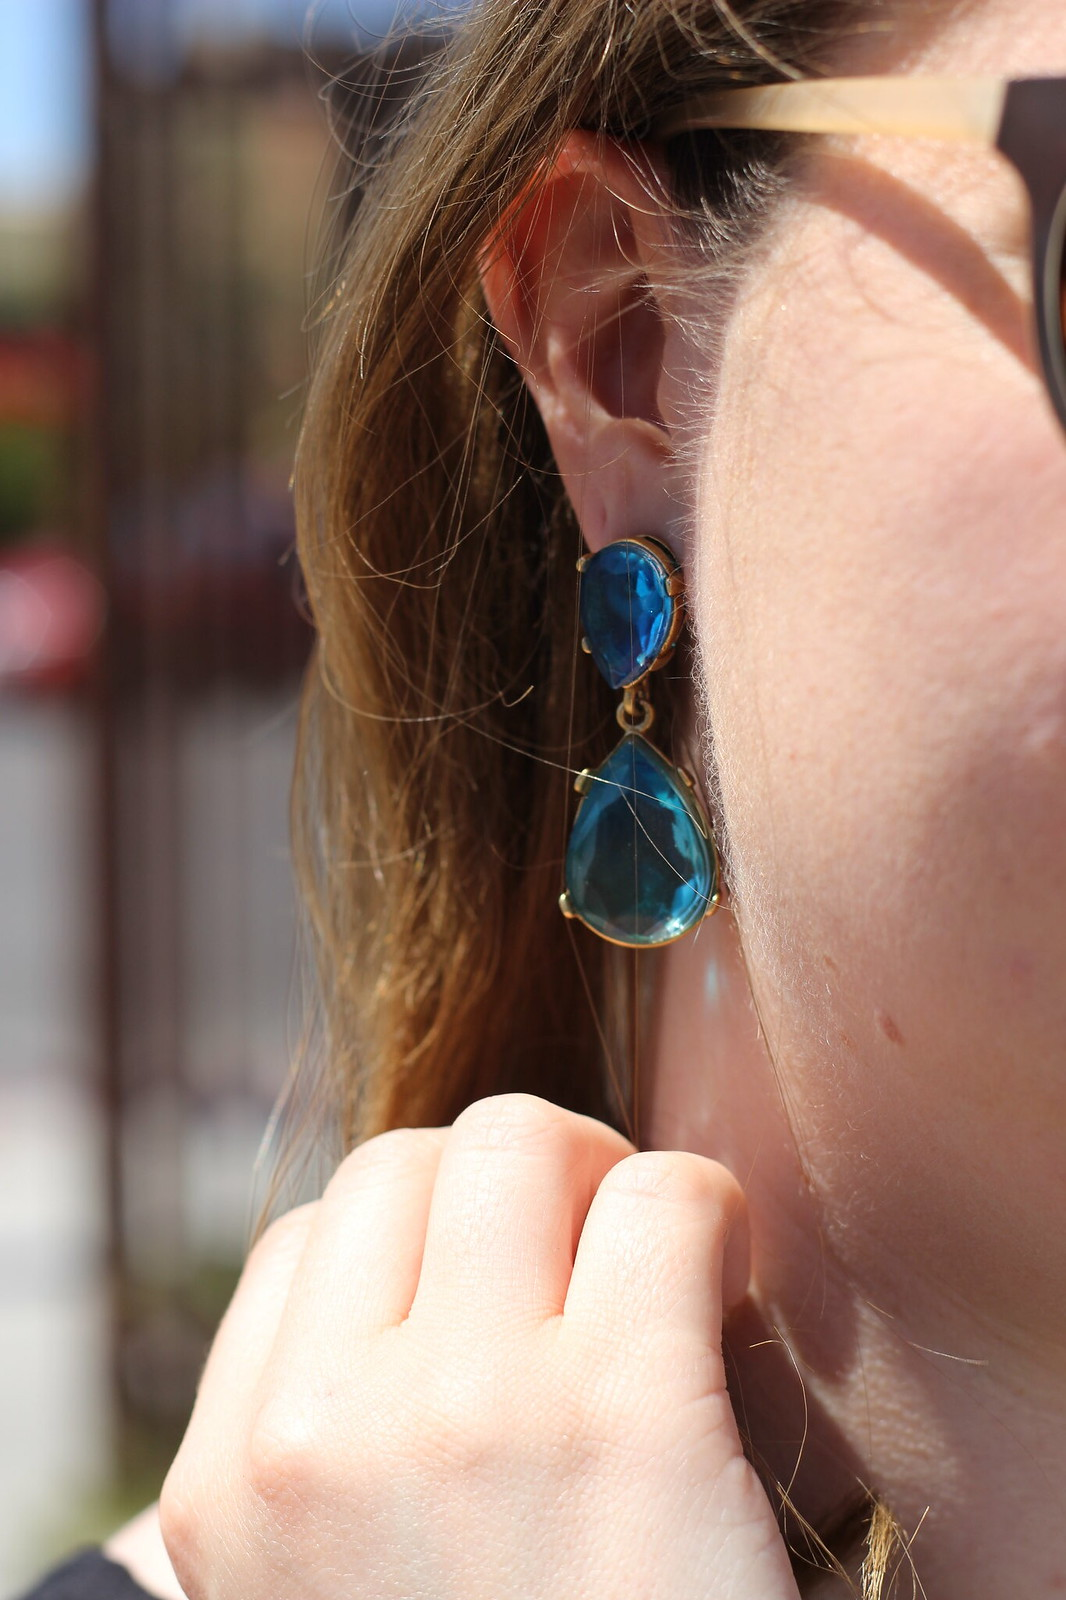 Teal Loren Hope Earrings